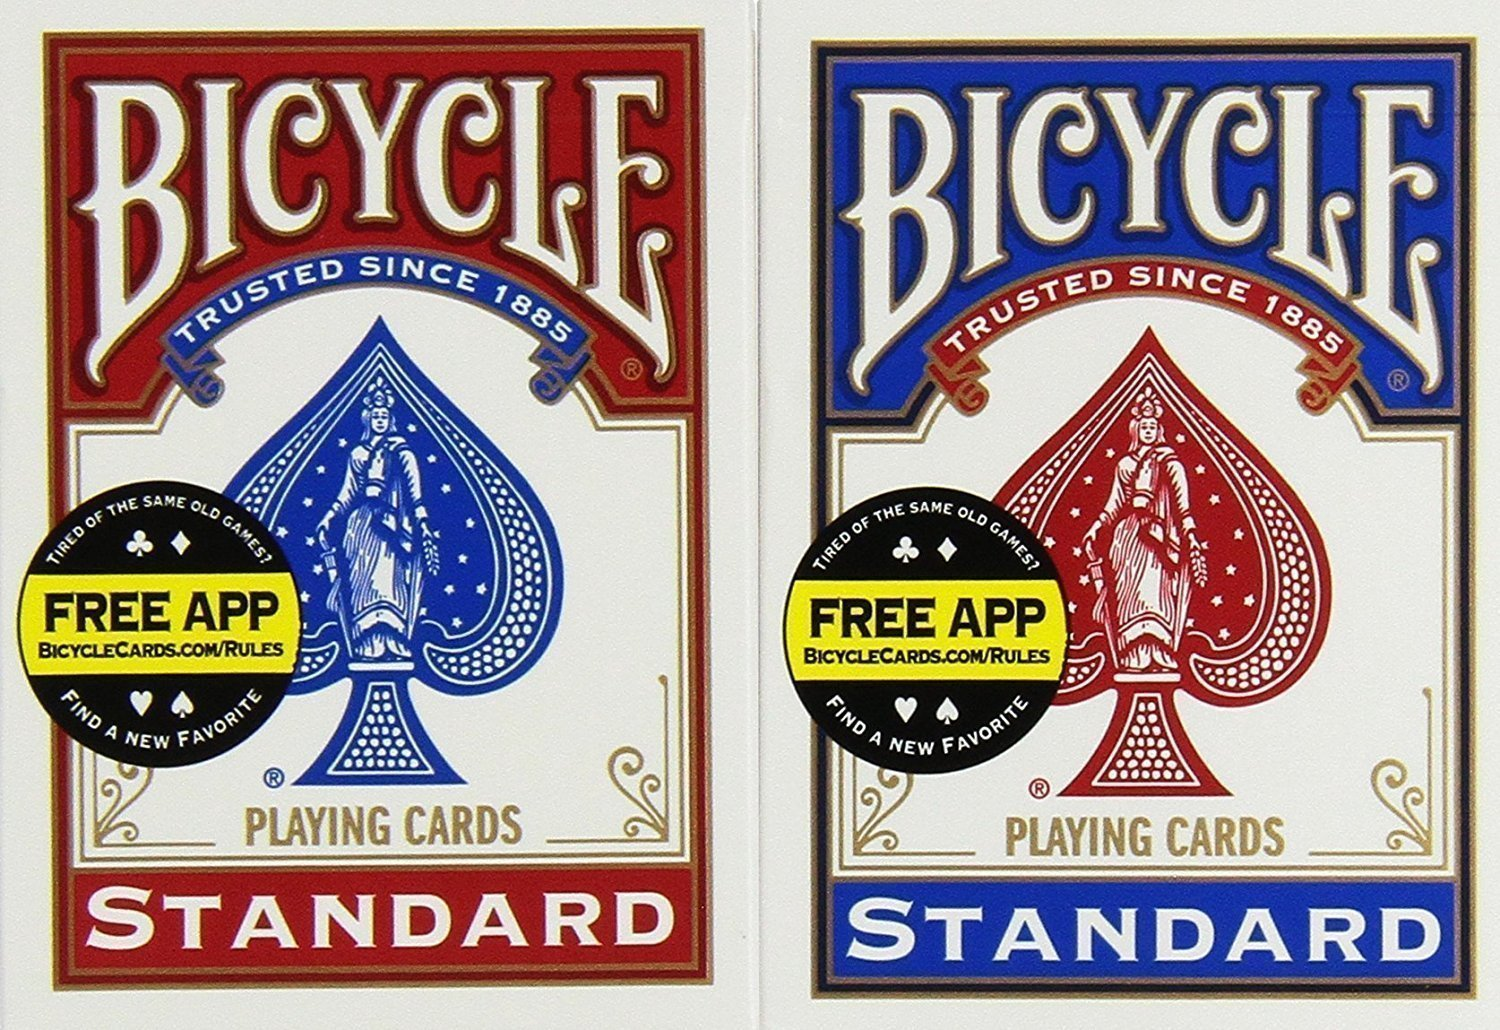 Bicycle Standard Index Playing Cards - Pack of 2 Mrd2p Spielen / Raten